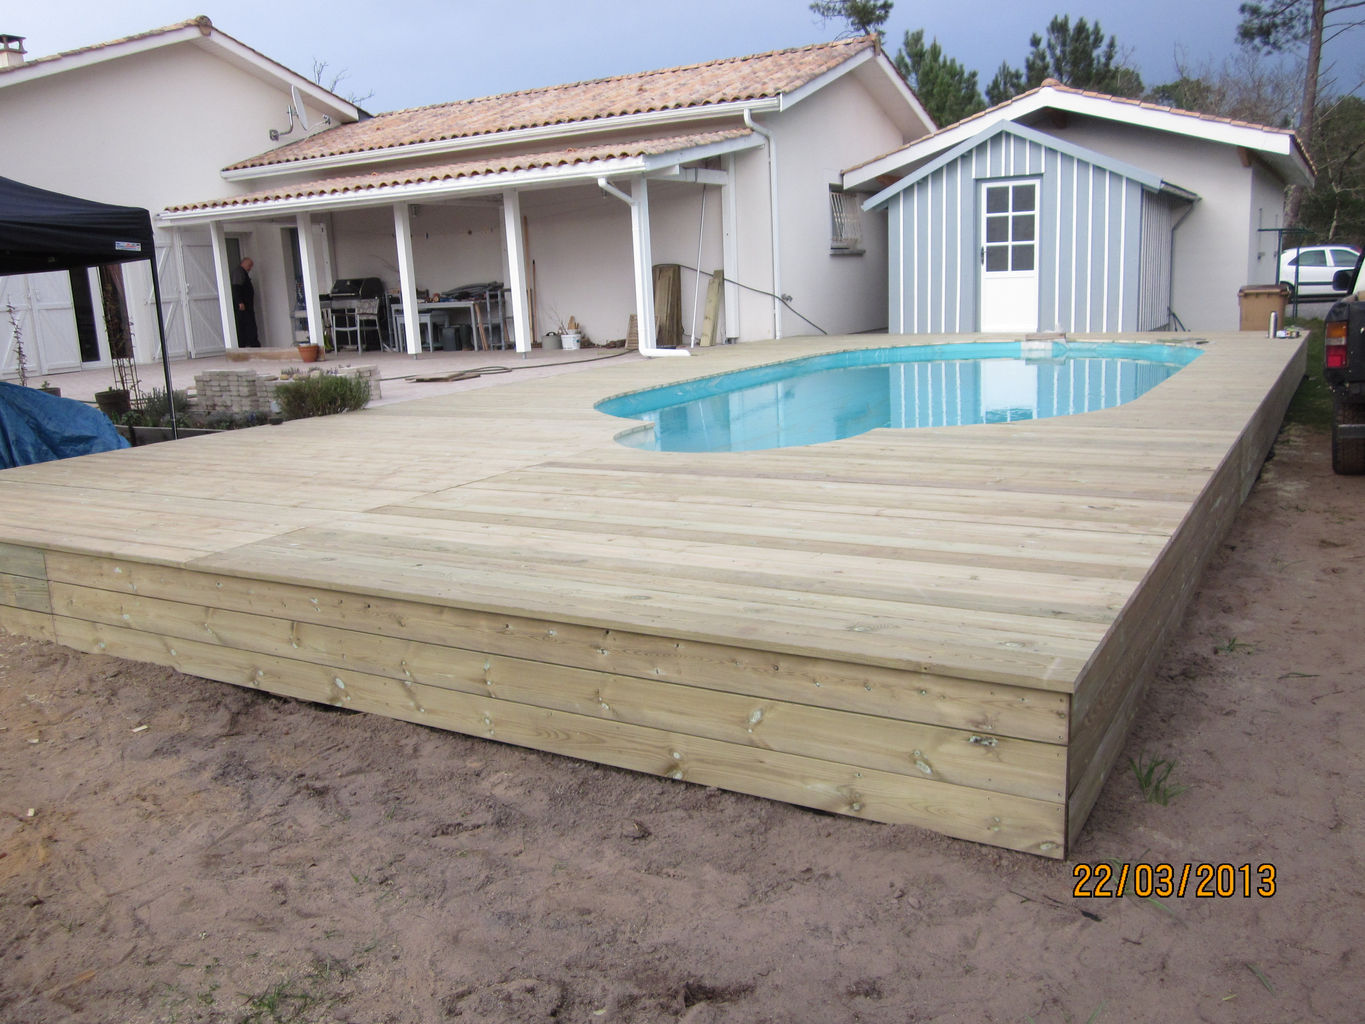 Terrasse en bois pour piscine hors sol excellent piscine for Local technique piscine leroy merlin